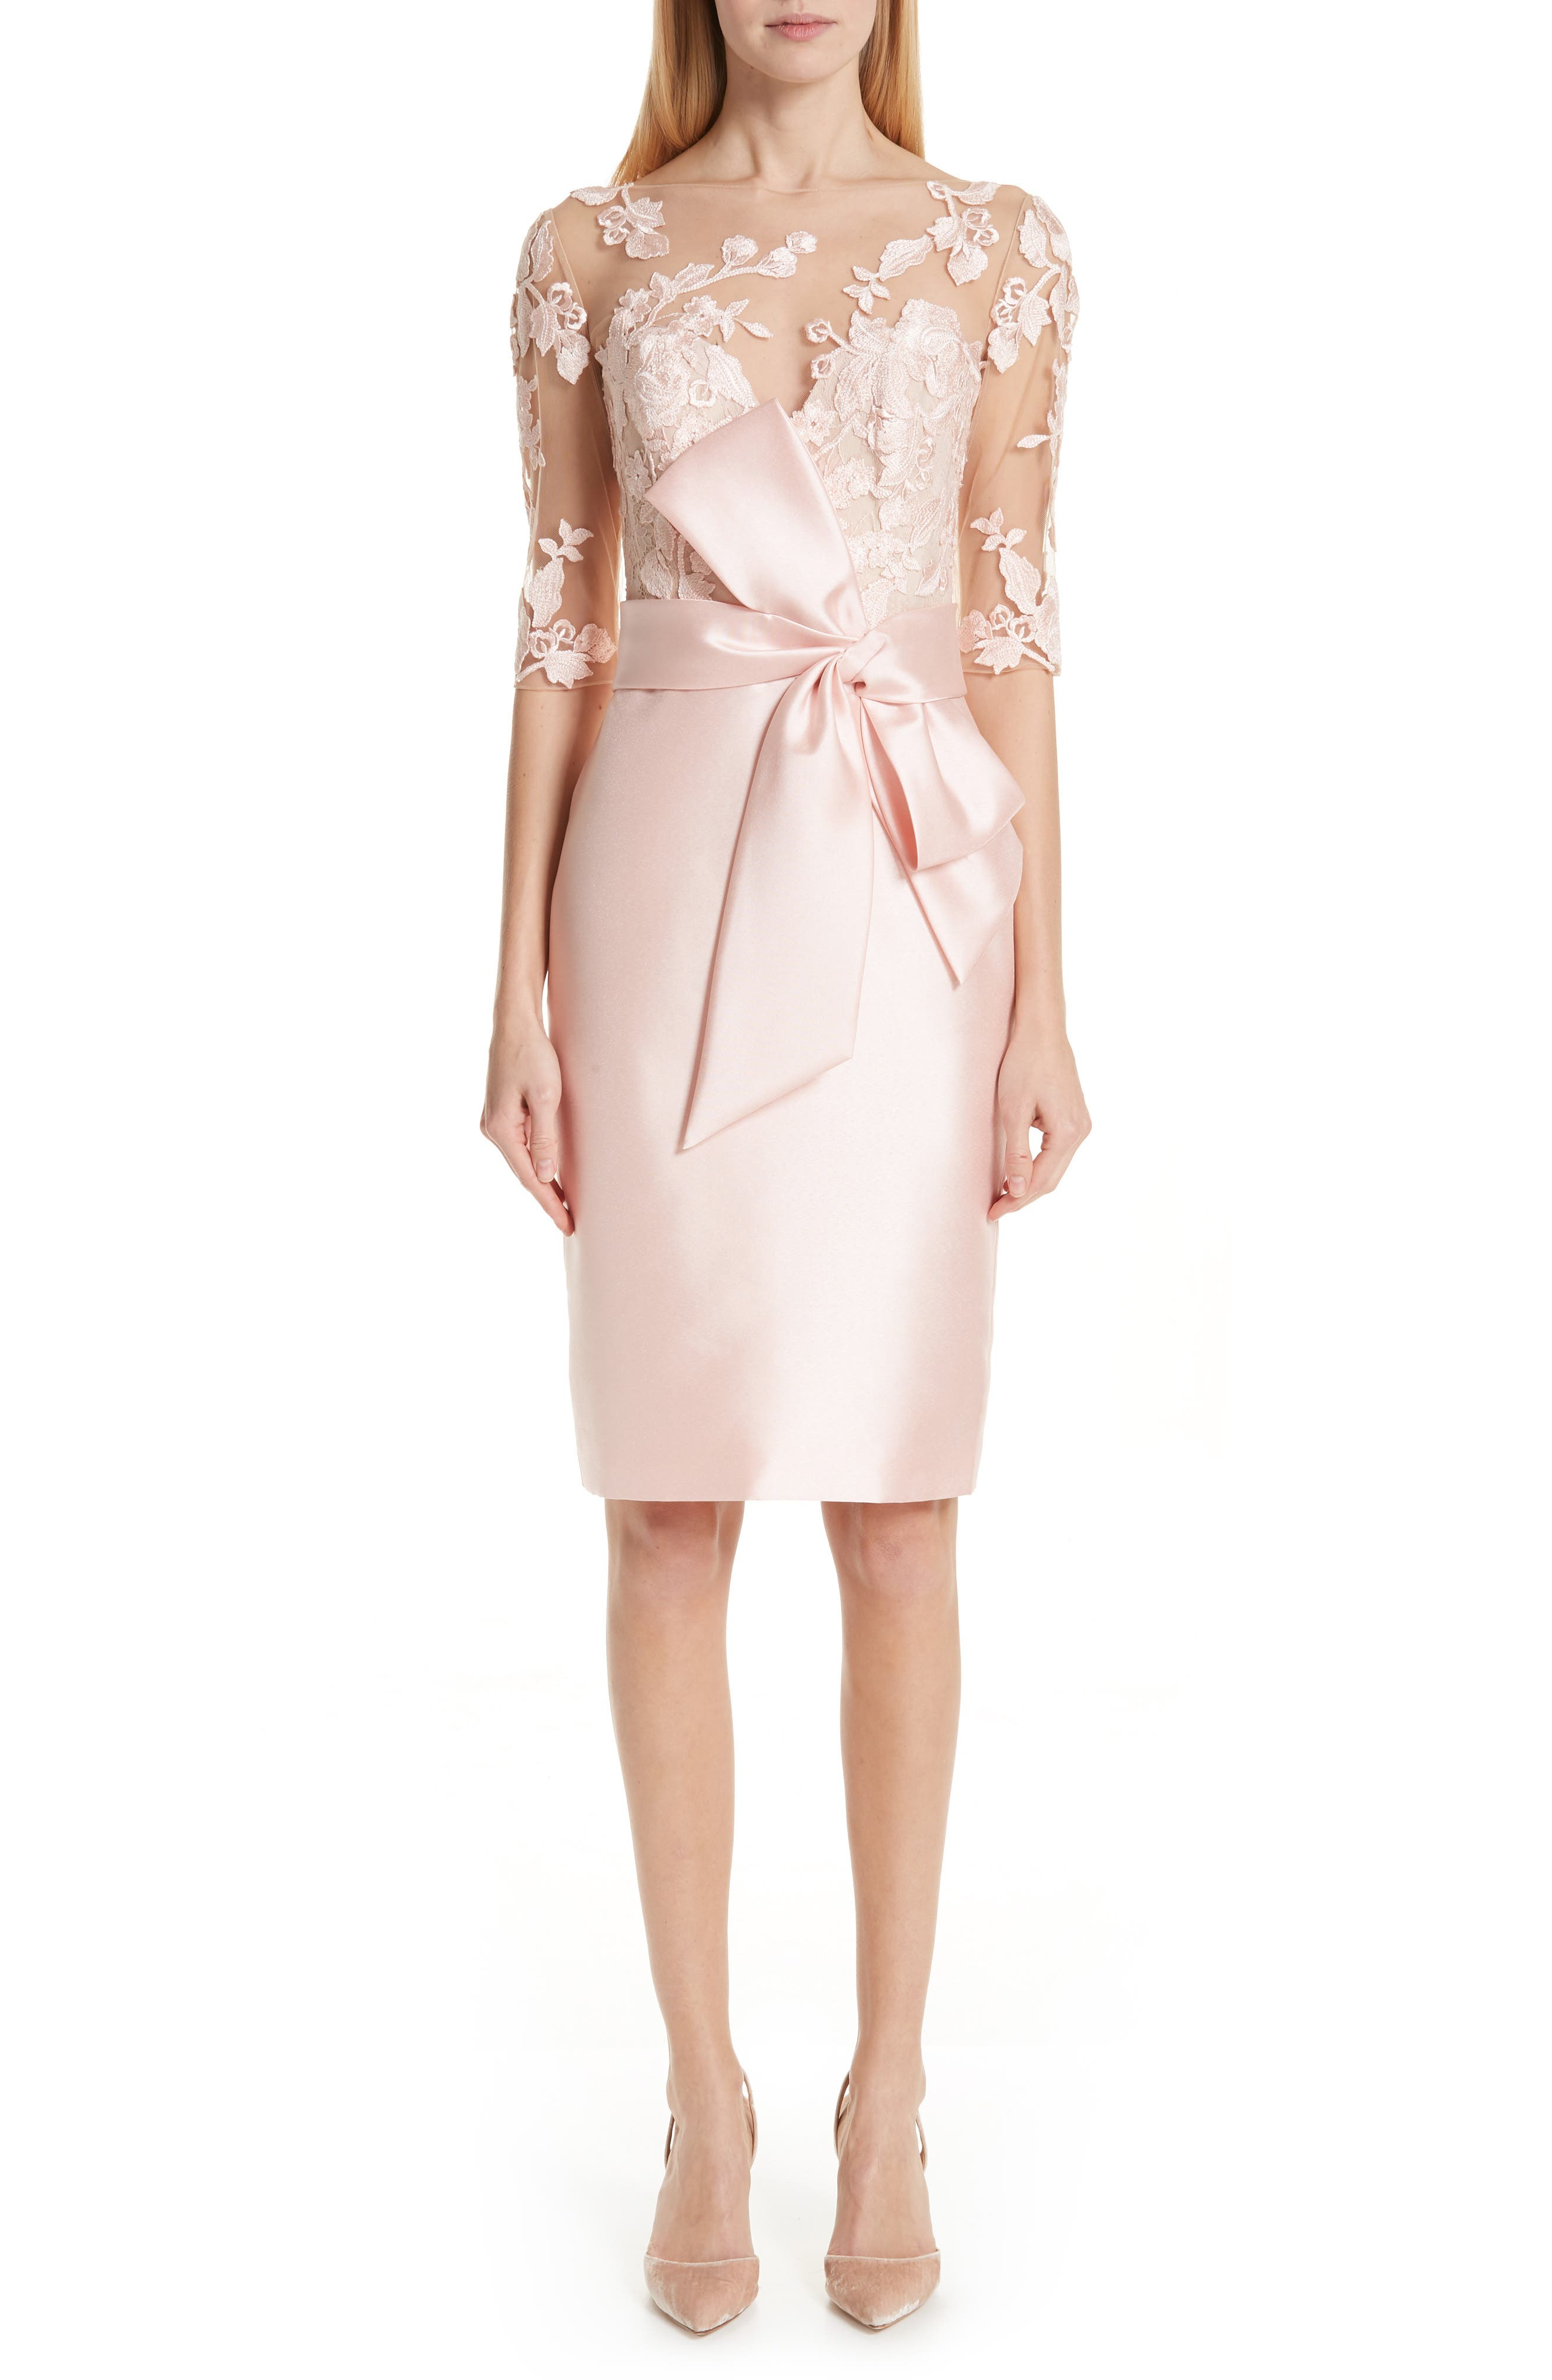 BADGLEY MISCHKA COLLECTION,                             Badgley Mischka Lace Accent Bow Cocktail Dress,                             Main thumbnail 1, color,                             PETAL